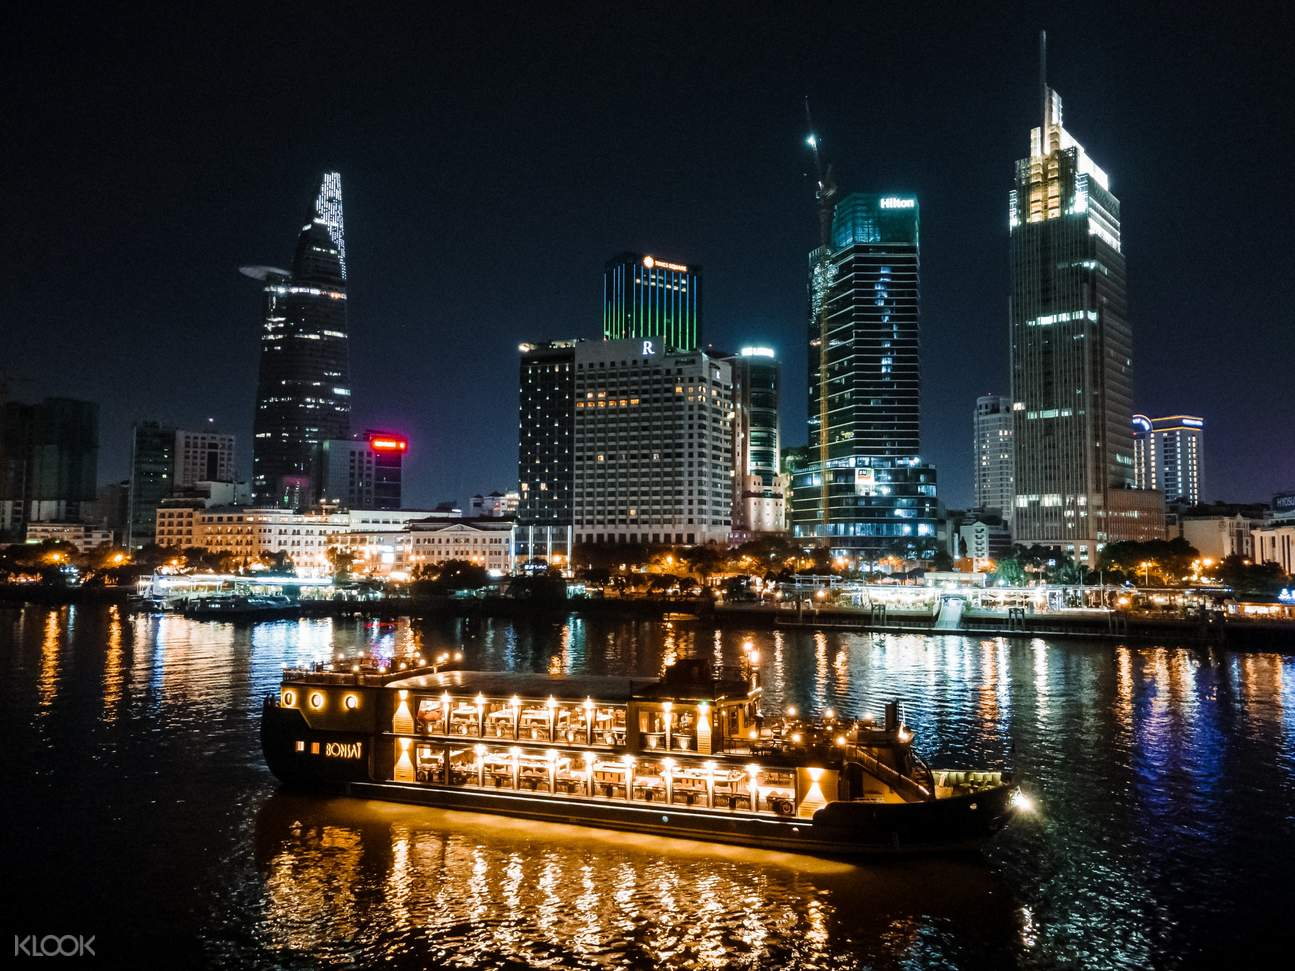 boat cruise with ho chi minh city in the background